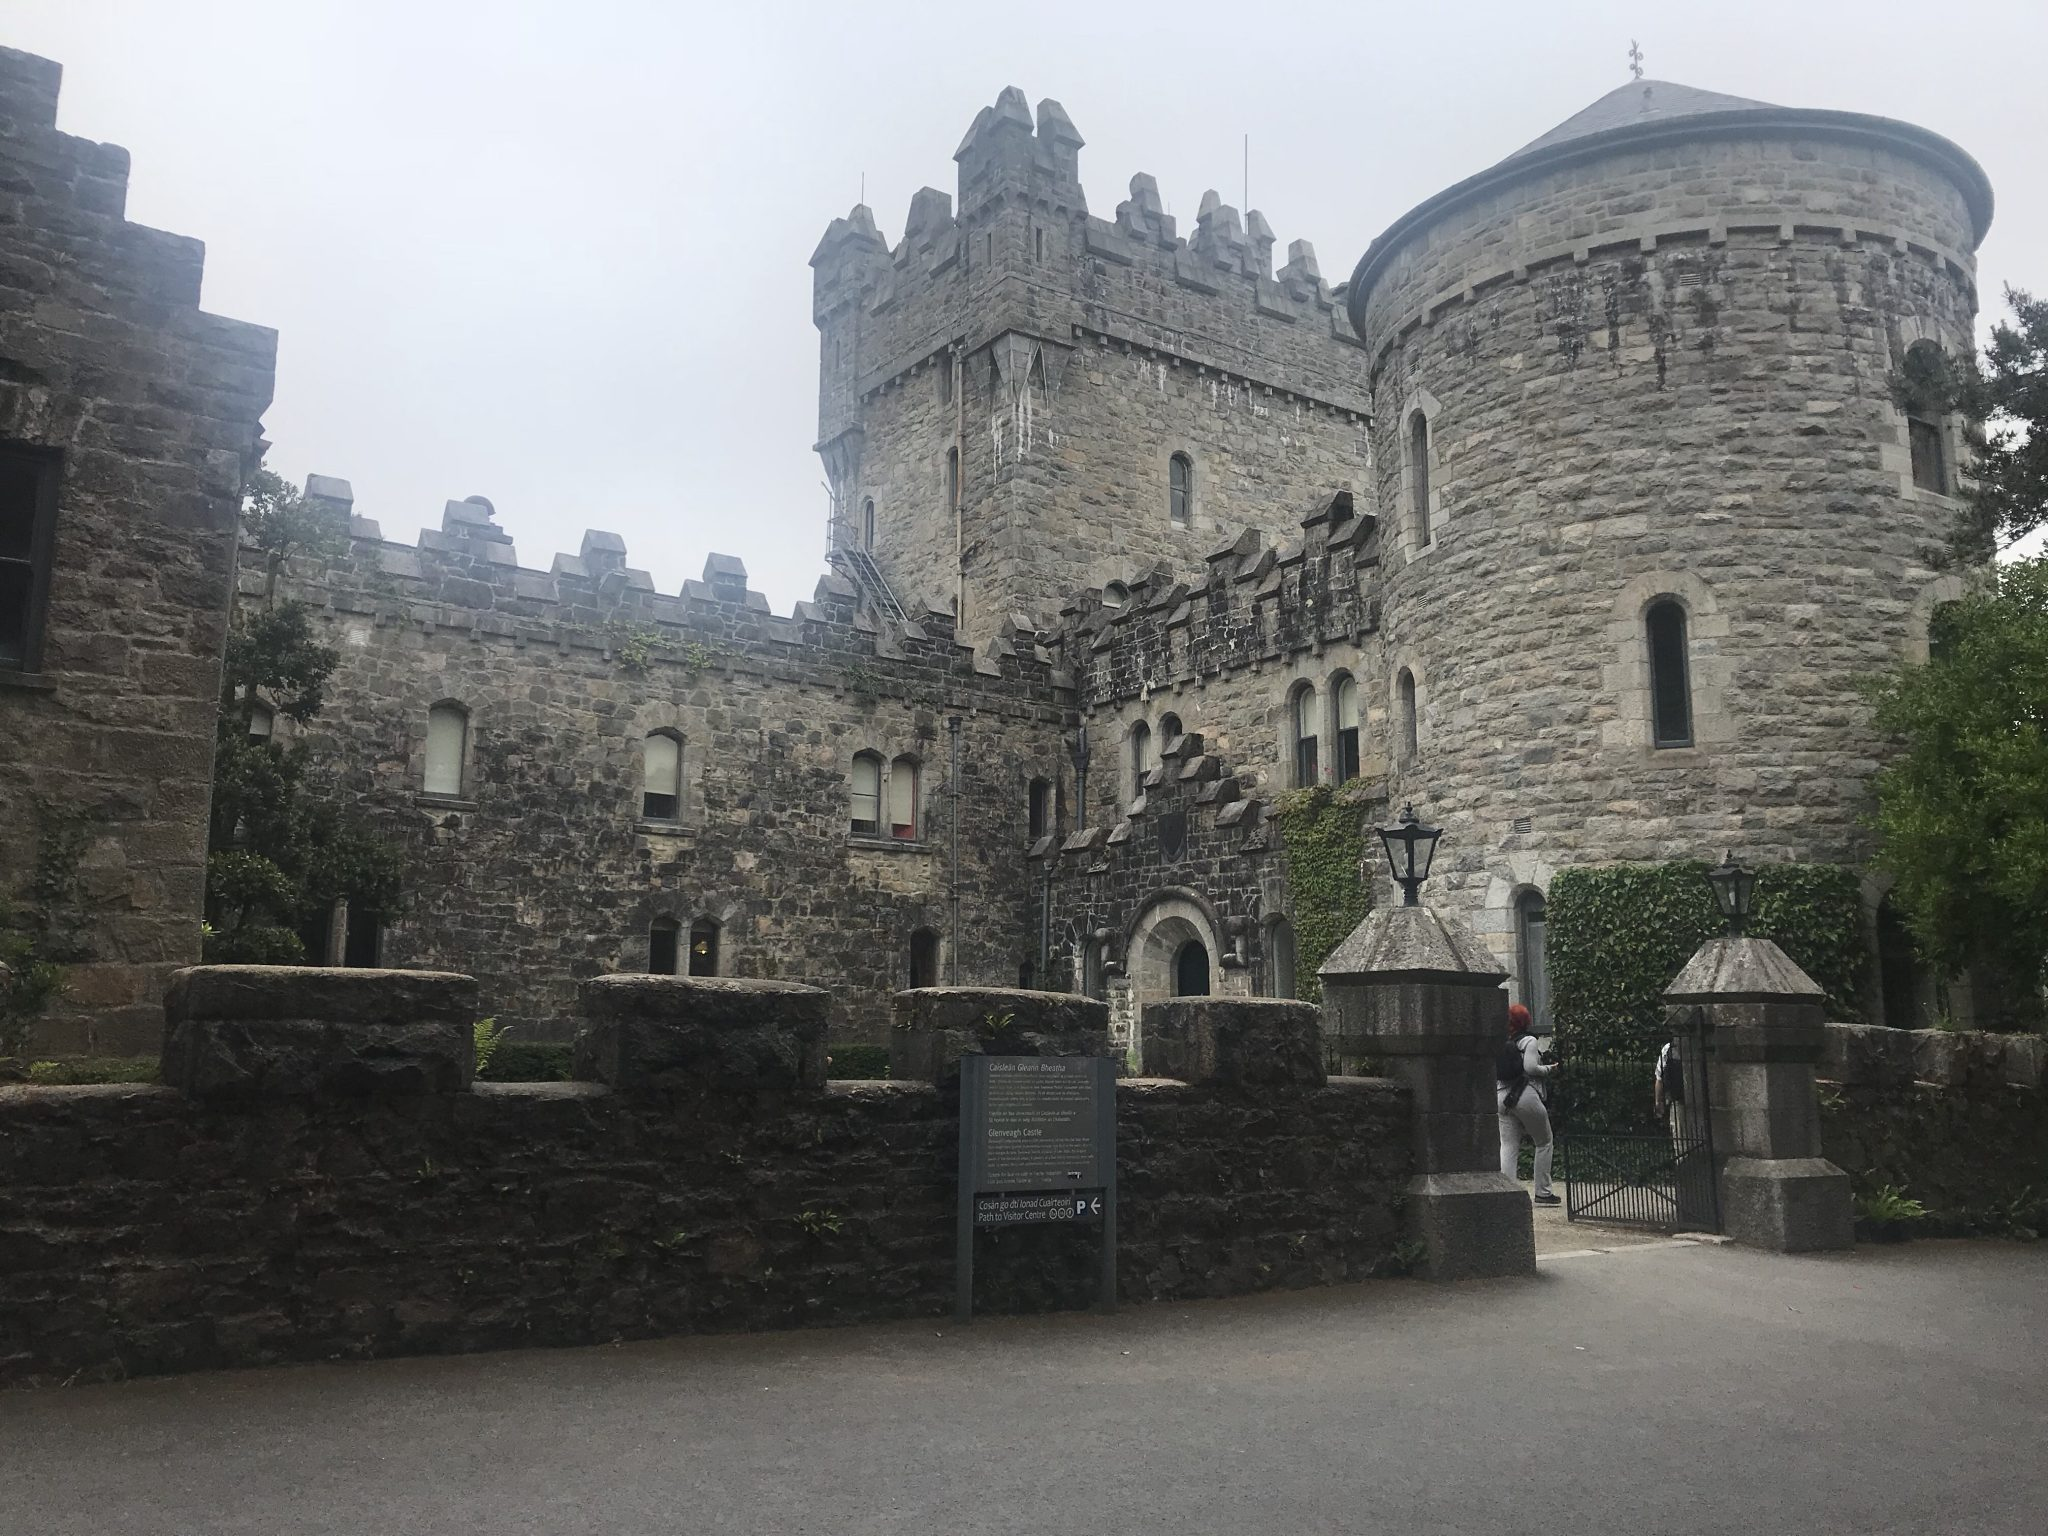 Glenveagh Castle and National Park